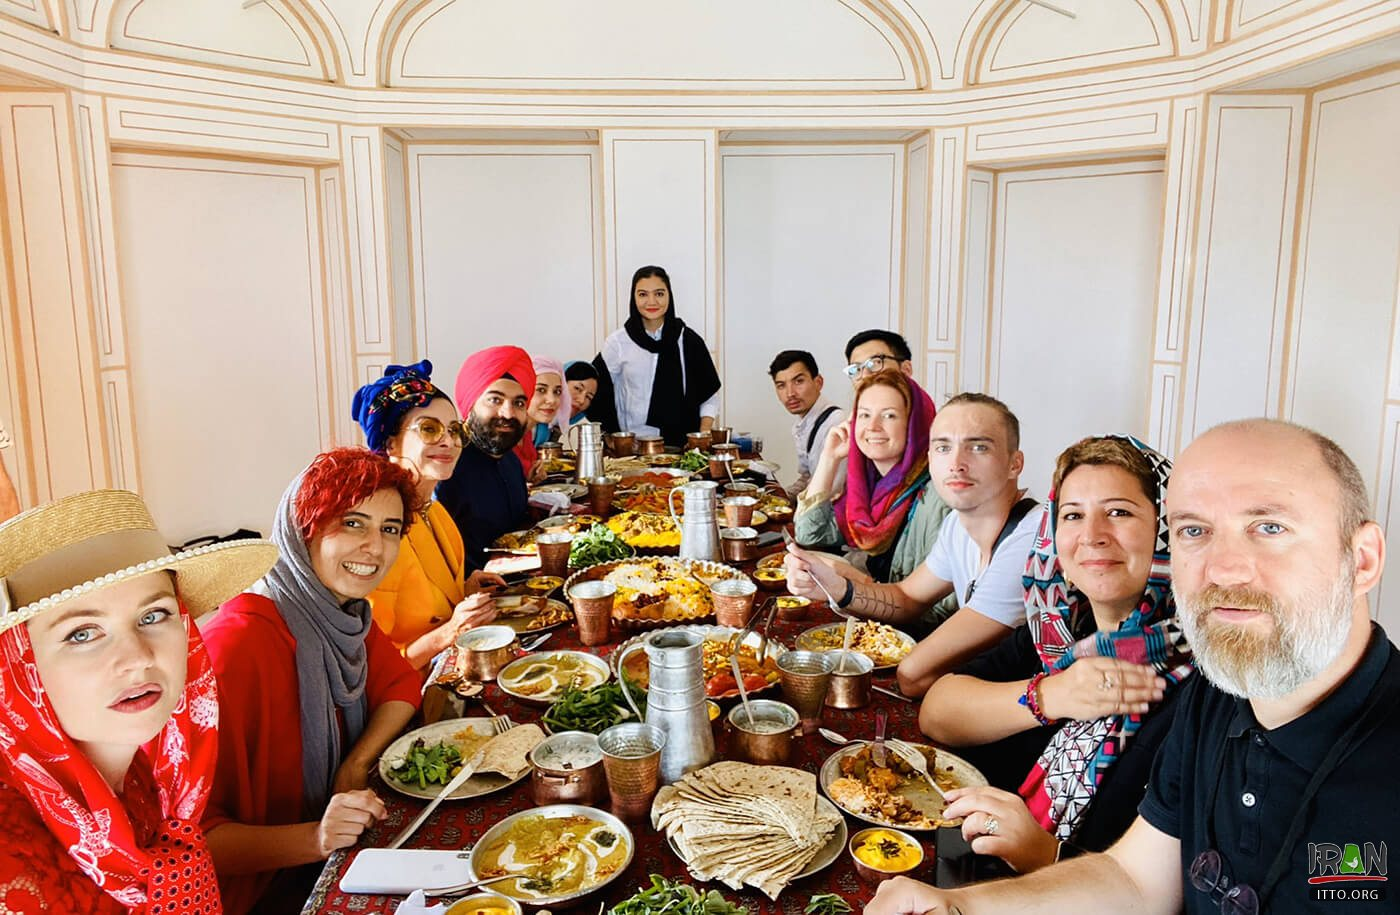 Fam trip, a new way to introduce tourist attractions of Iran